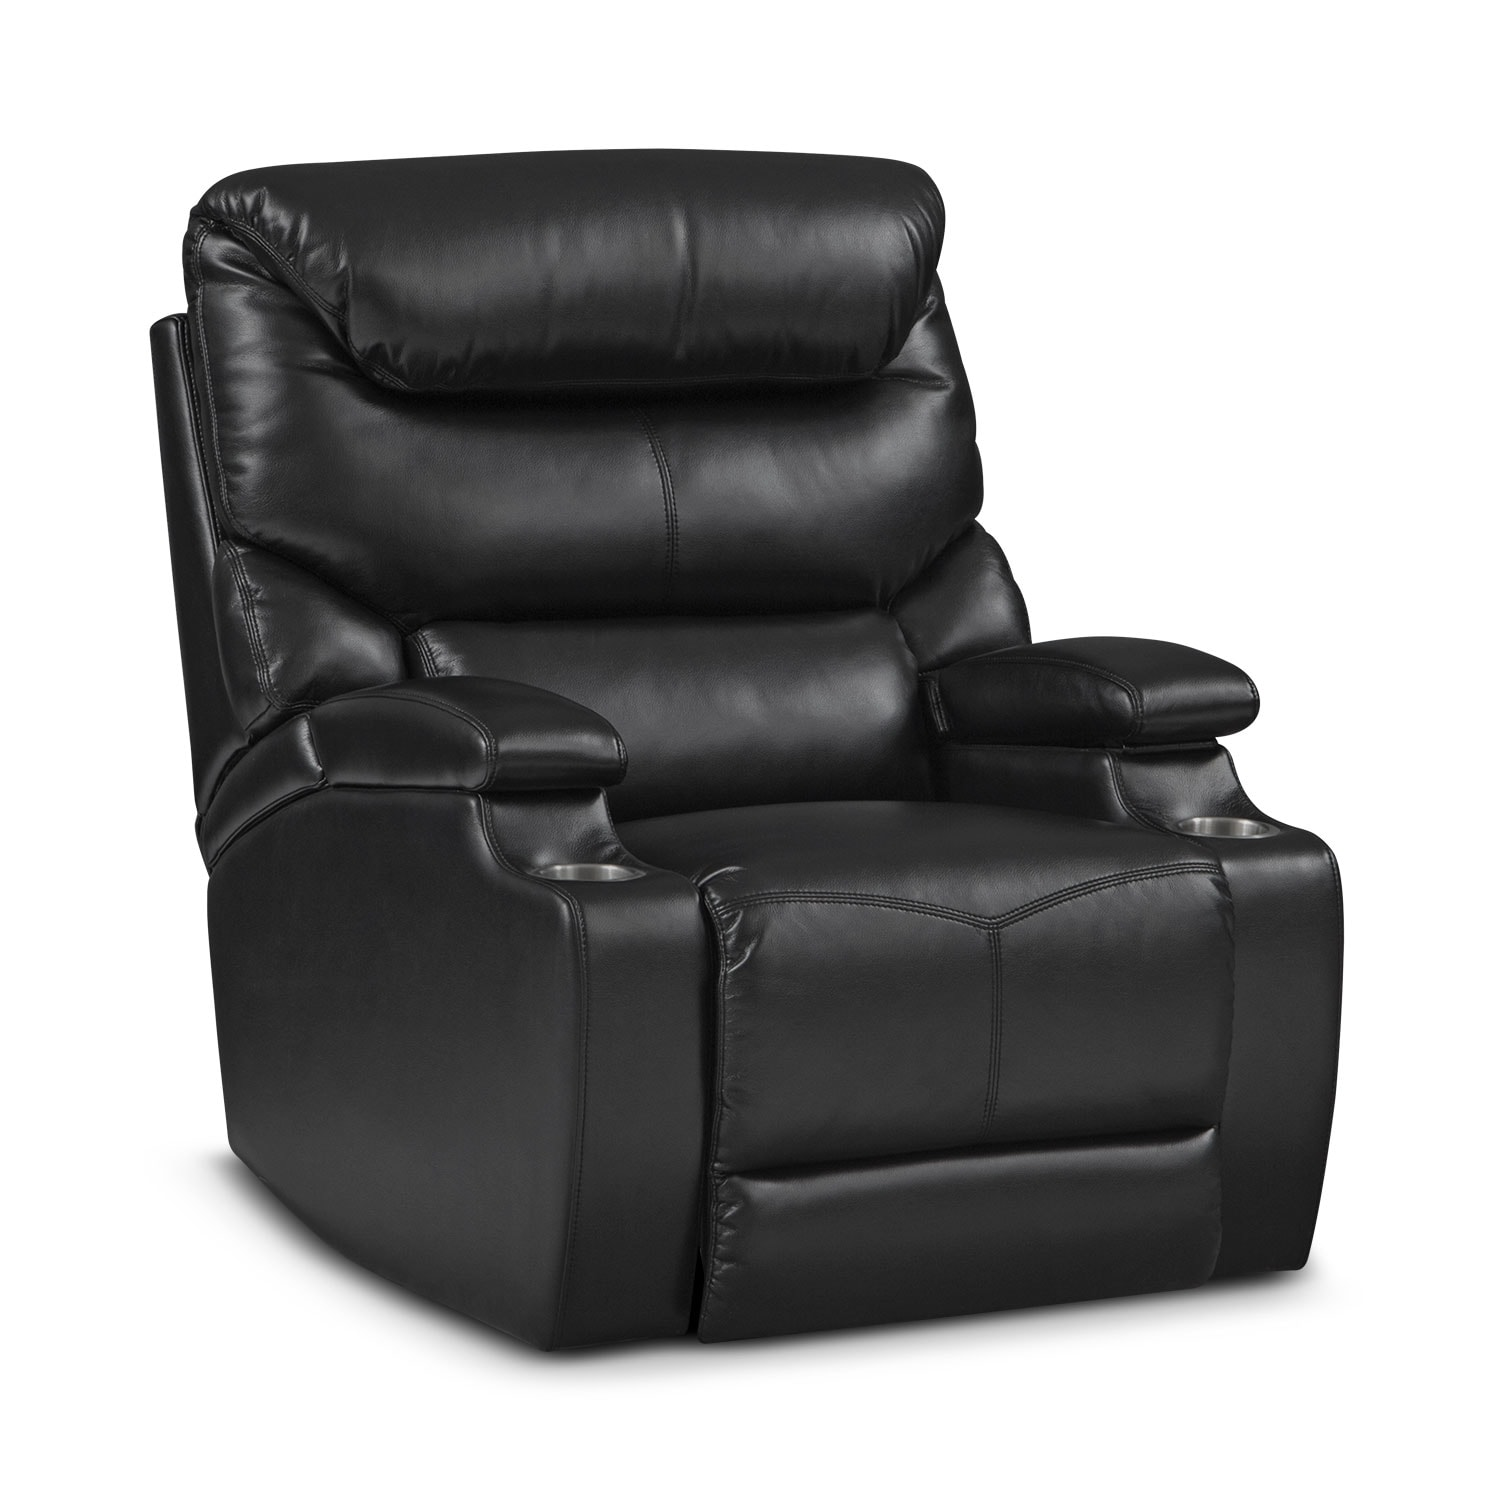 Jupiter Black Power Recliner